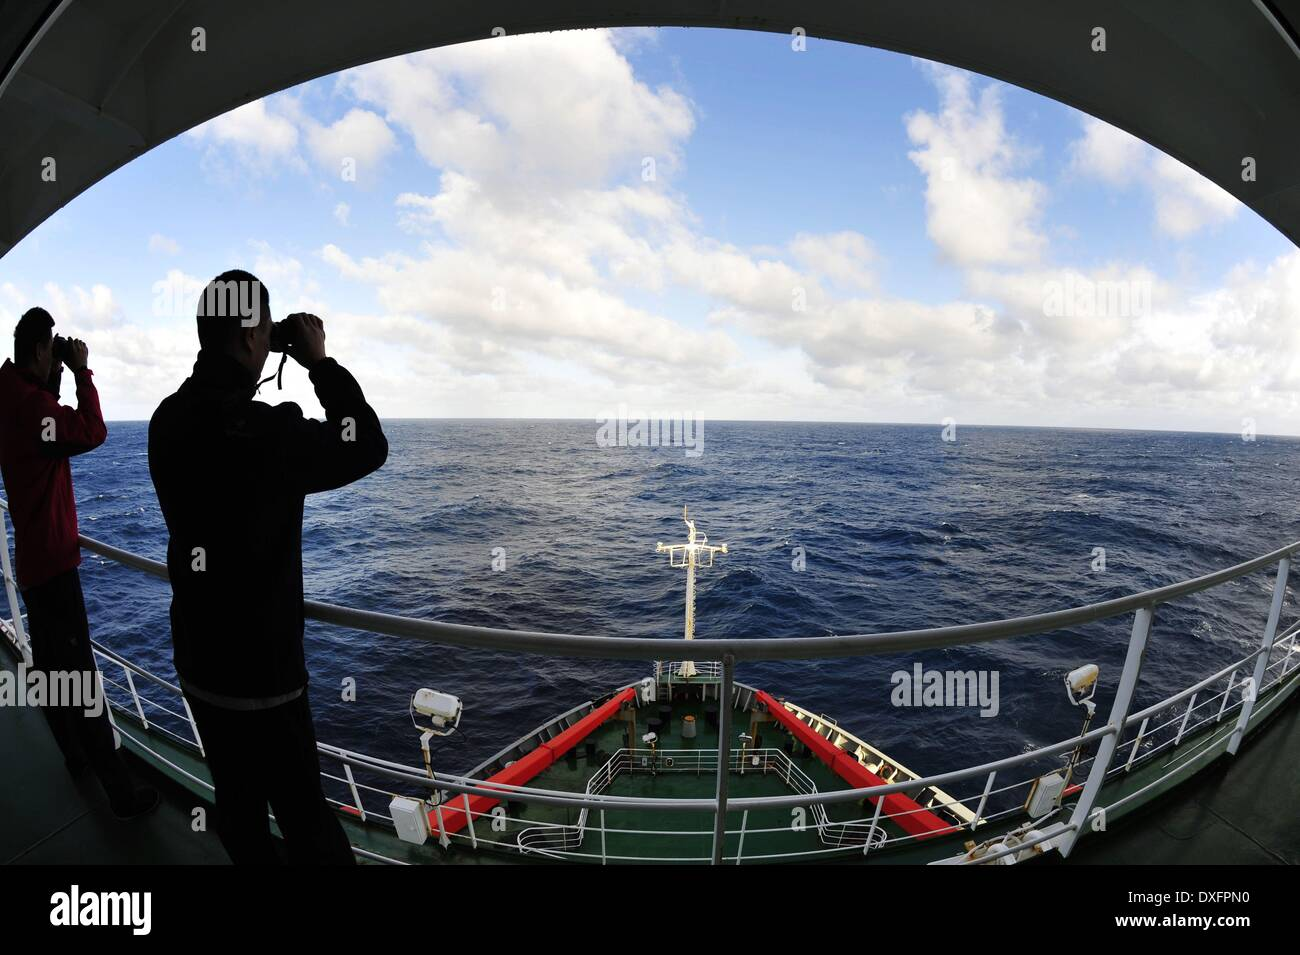 Aboard Xuelong. 26th Mar, 2014. Crew members of Chinese icebreaker Xuelong scan the sea to search for missing Malaysia Airlines Flight MH370 in the area where Chinese airborne searchers spotted some suspicious objects in the southern Indian Ocean on March 26, 2014. Credit:  Zhang Jiansong/Xinhua/Alamy Live News - Stock Image